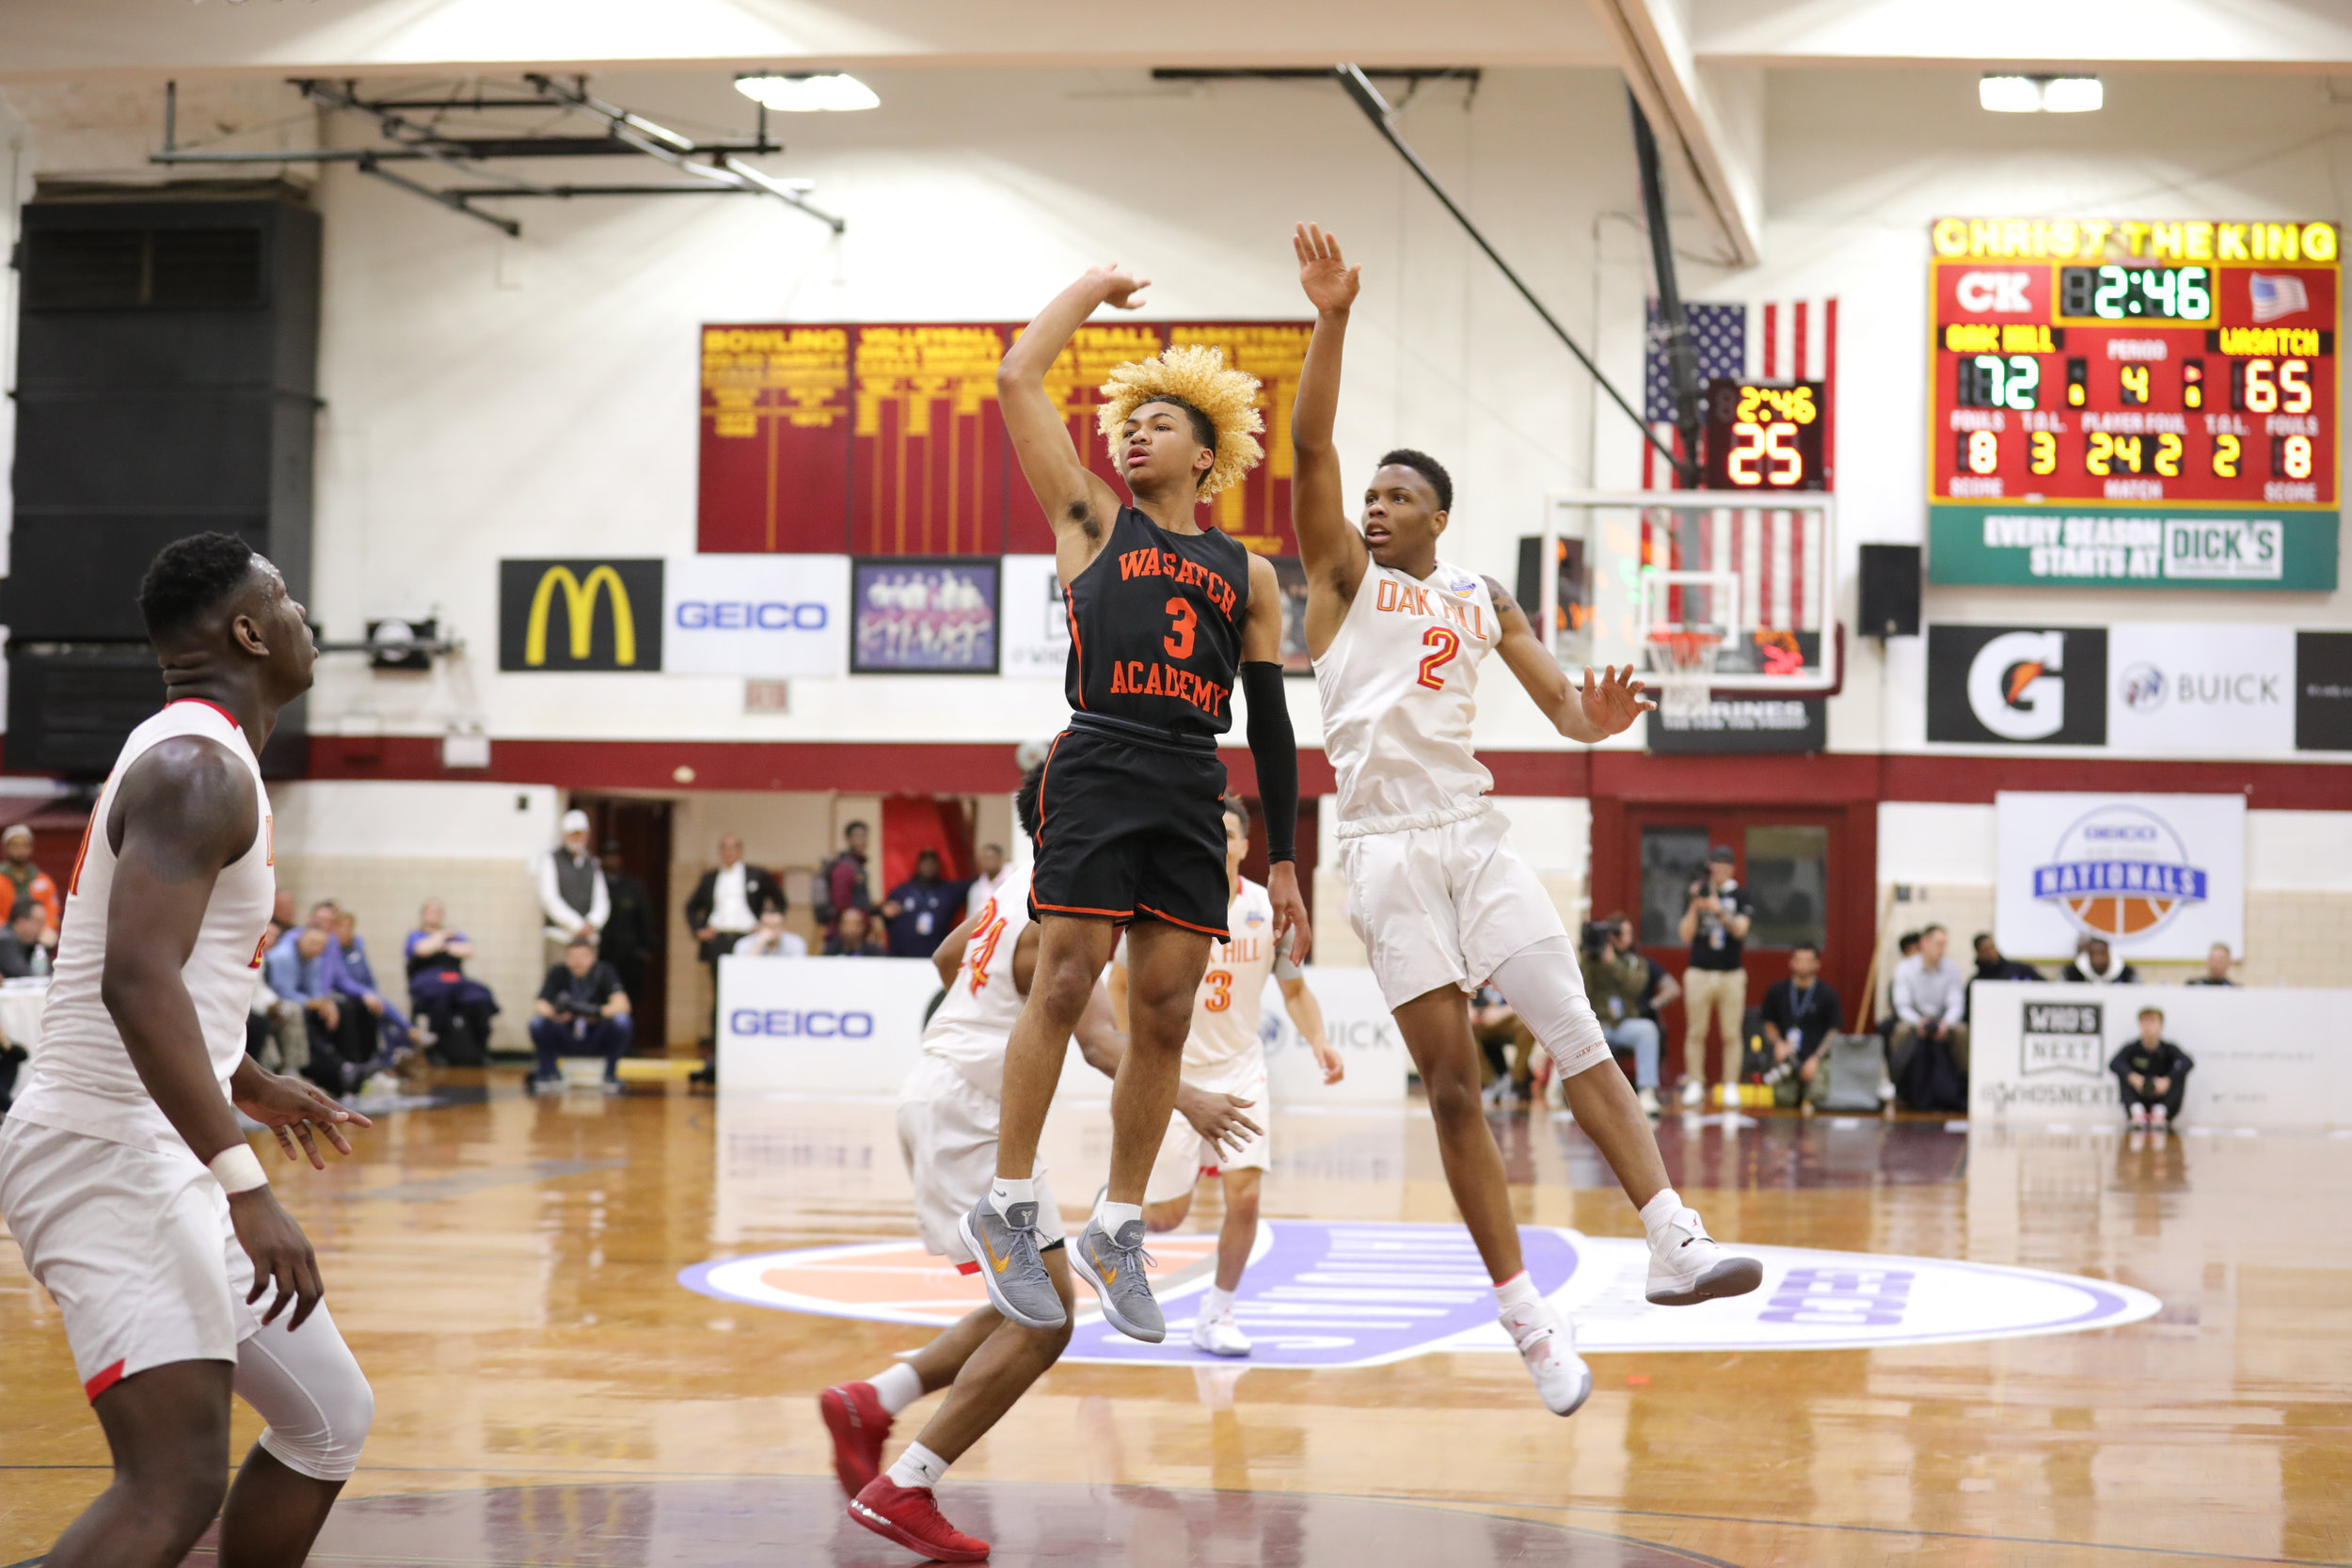 BBall_Geico_Nationals_2019 (54 of 59).jpg